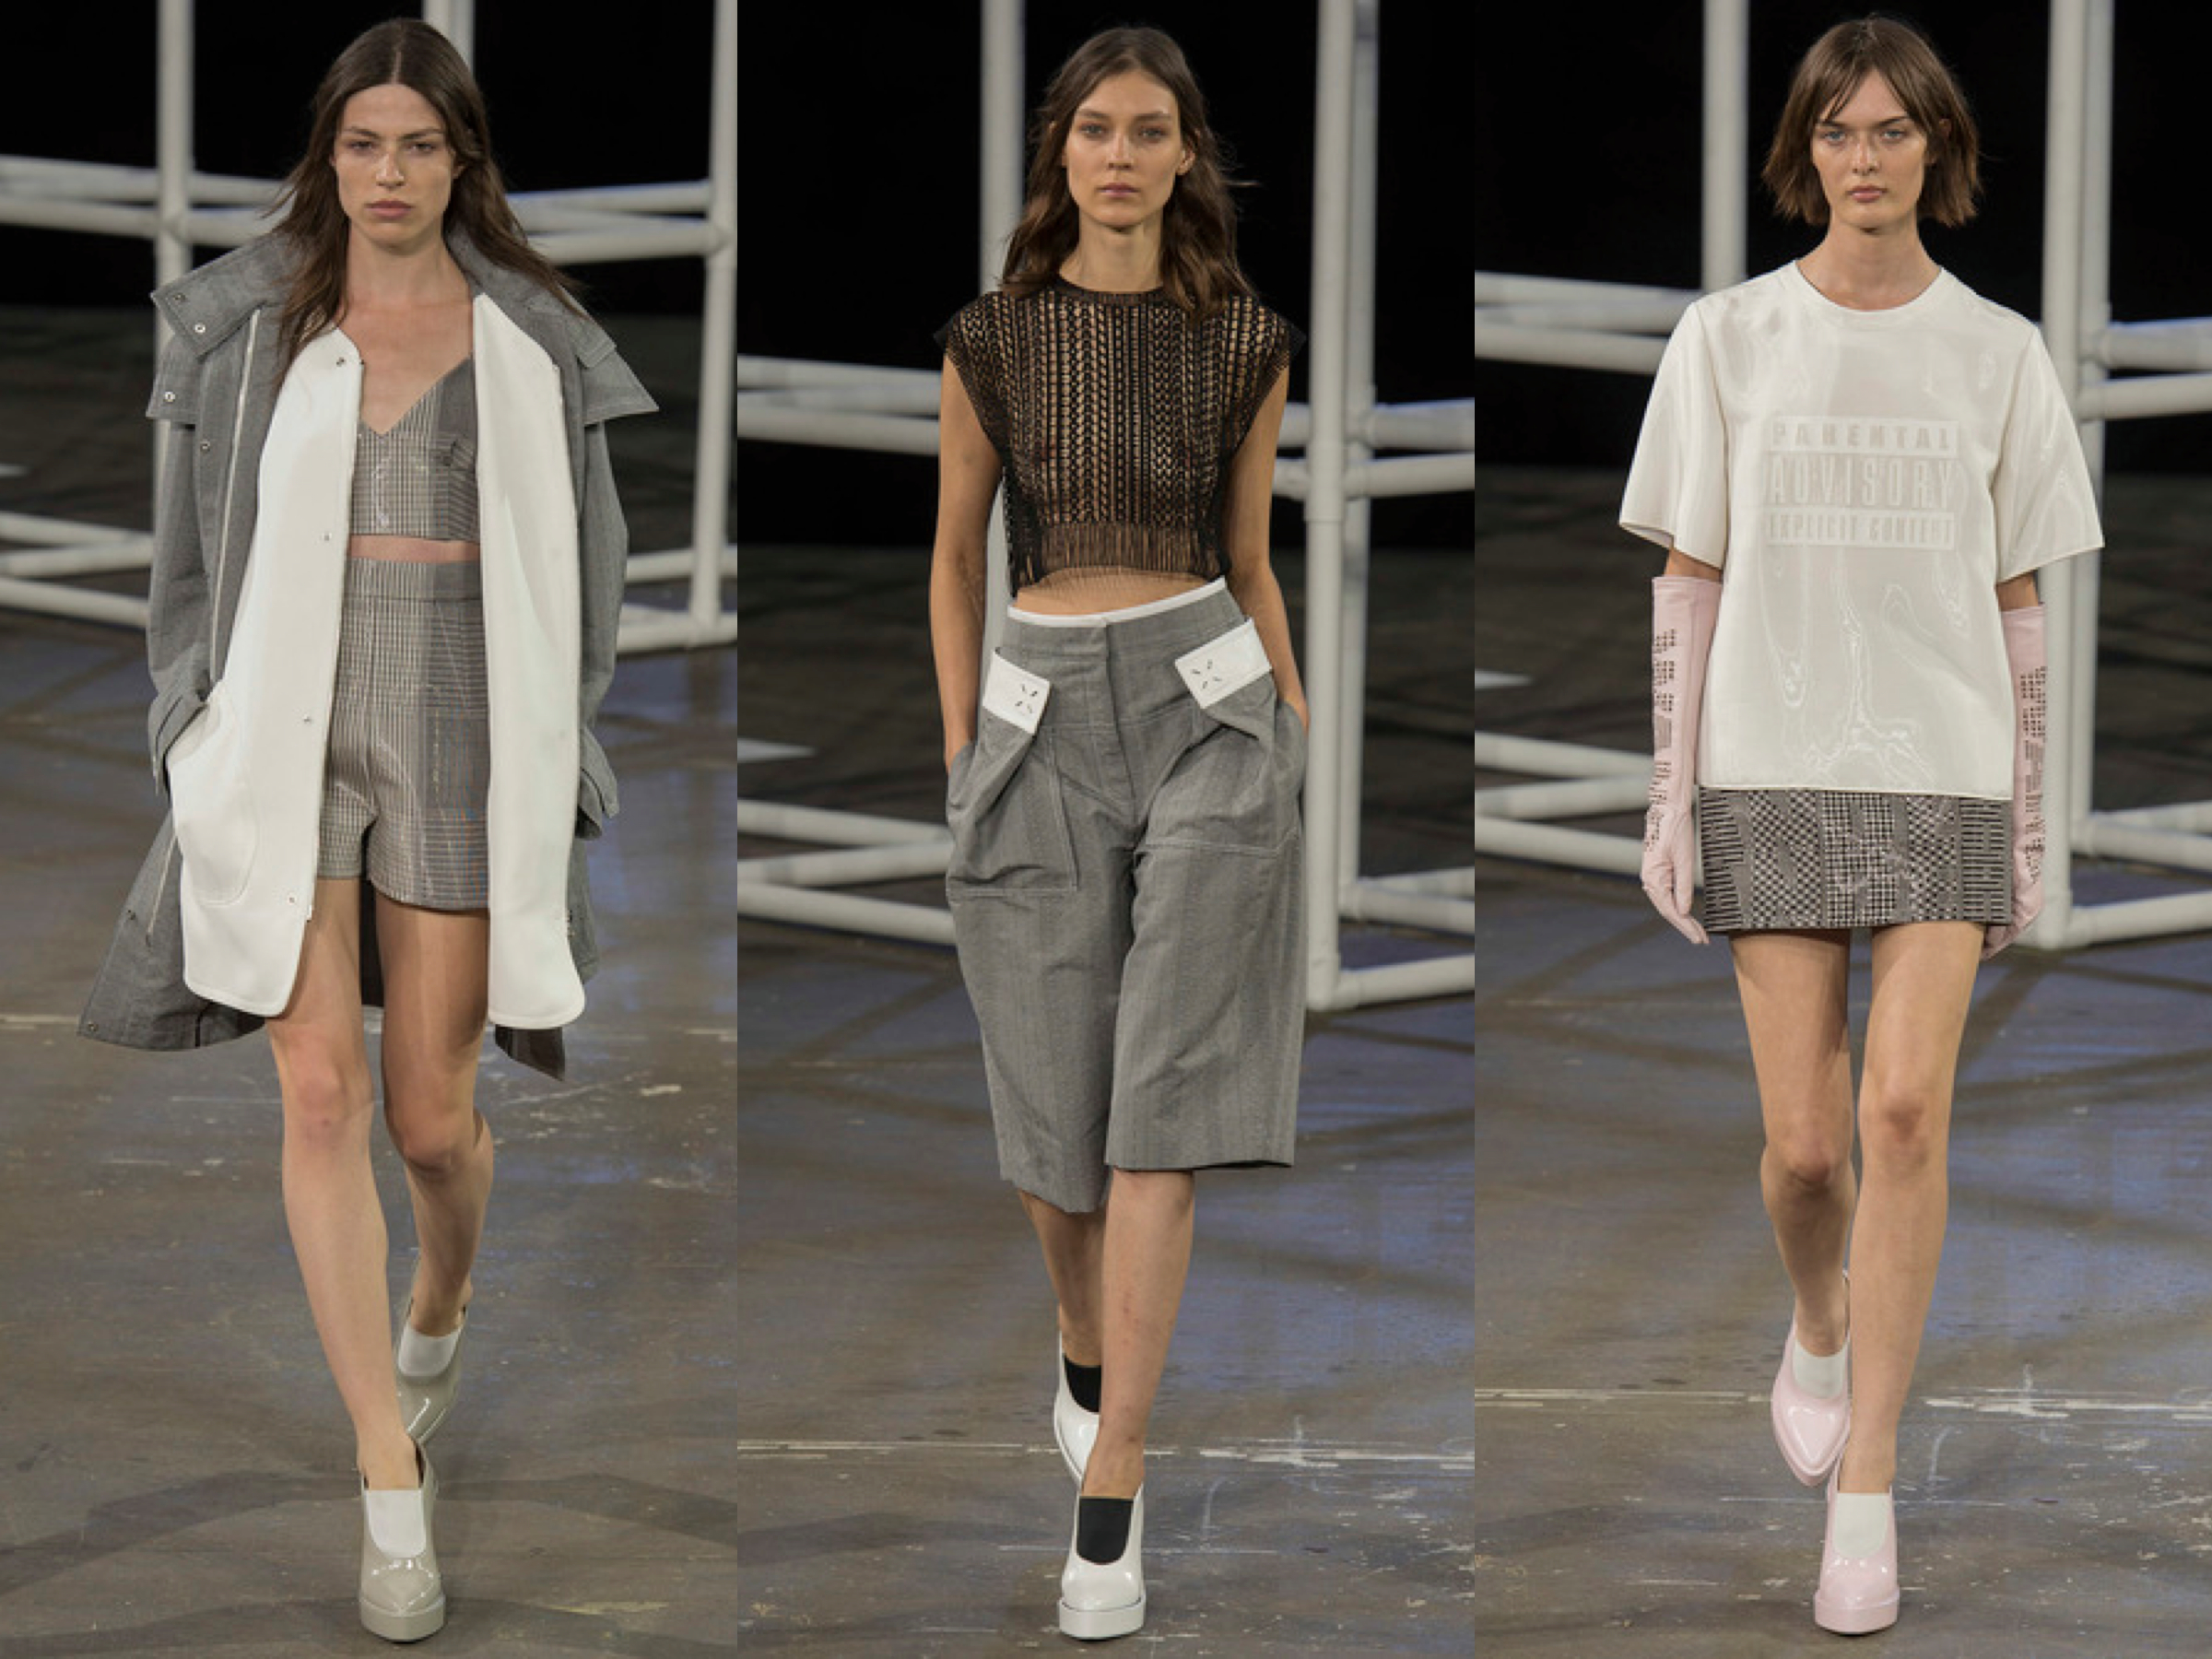 Alexander Wang Spring 2014 collage